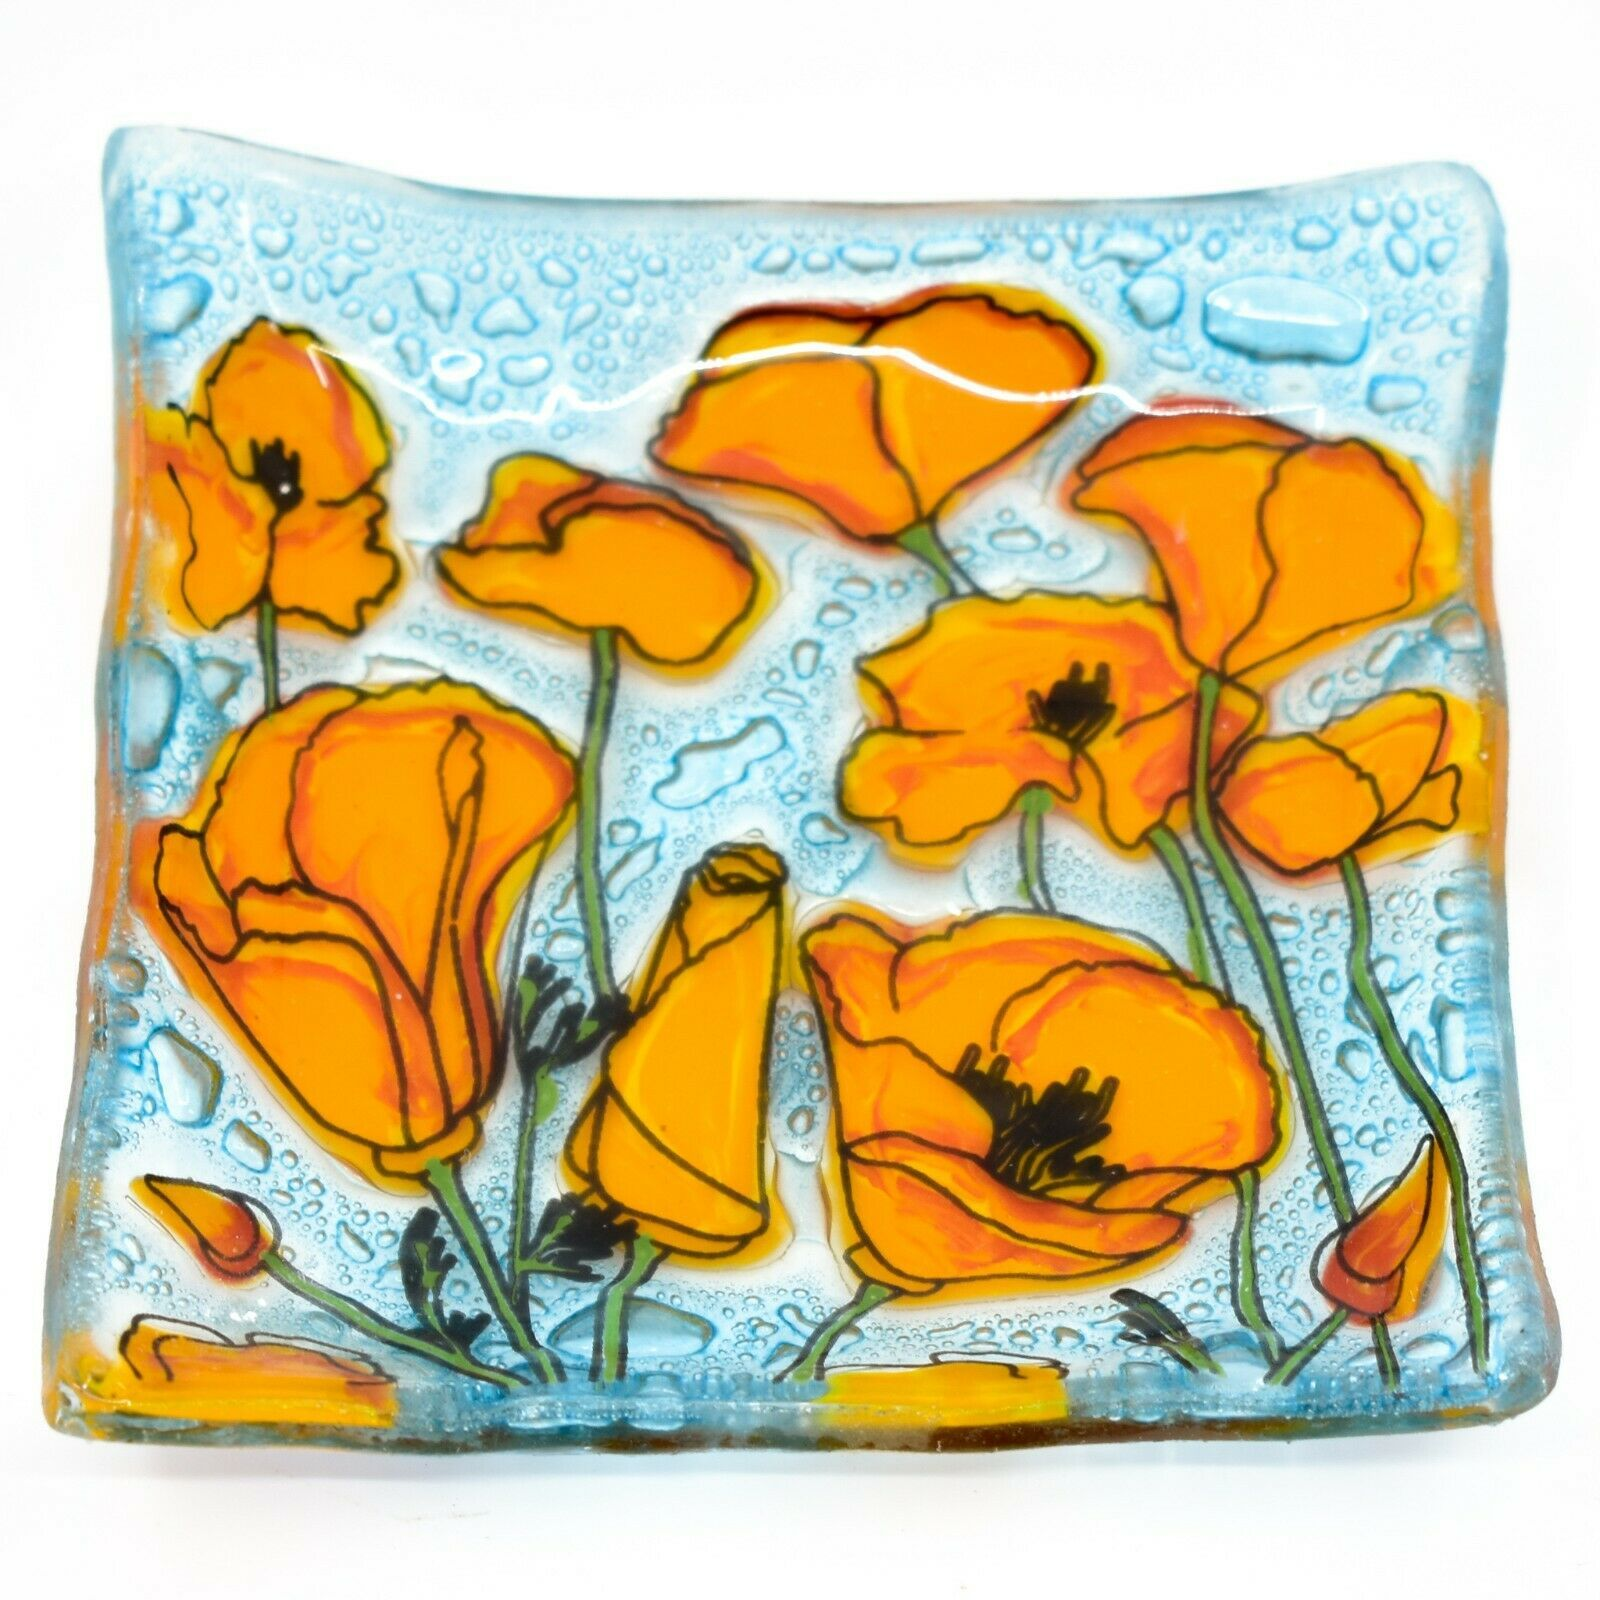 Fused Art Glass Orange Poppies Flower Design Square Soap Dish Handmade Ecuador